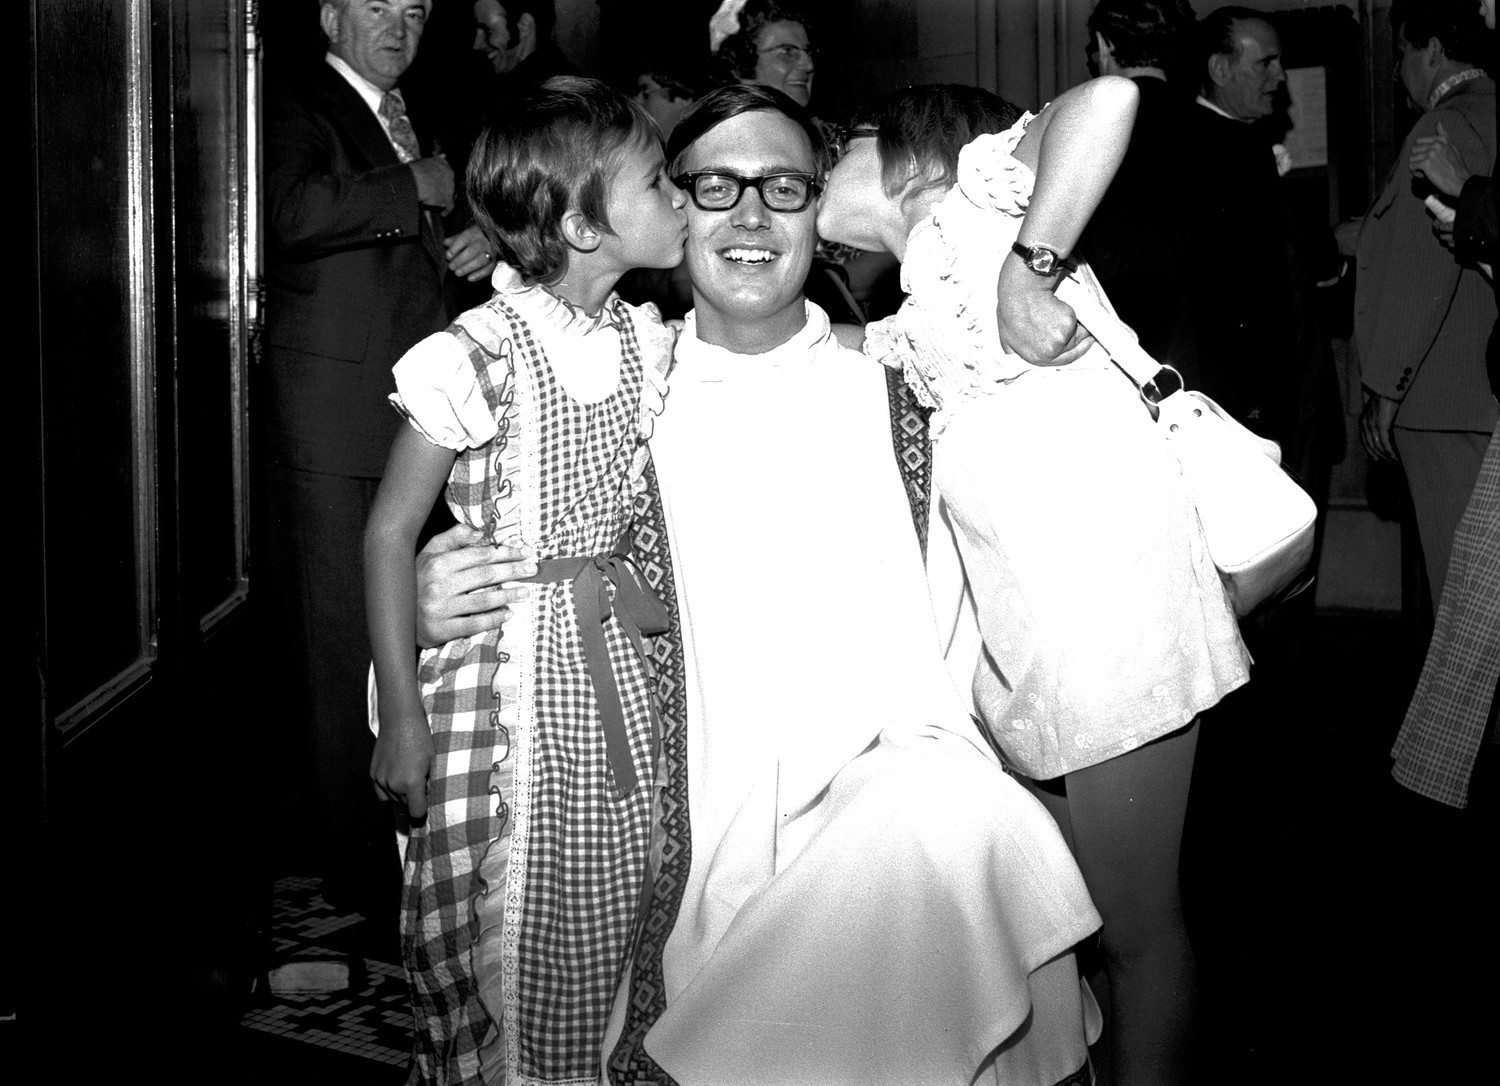 After being ordained at St. Paul Cathedral on July 23, 1973, Father Thomas J. Tobin of Perrysville, Pennsylvania, received congratulations from his two small nieces, Susan Kreutzer, left, and Brigitte Tobin.